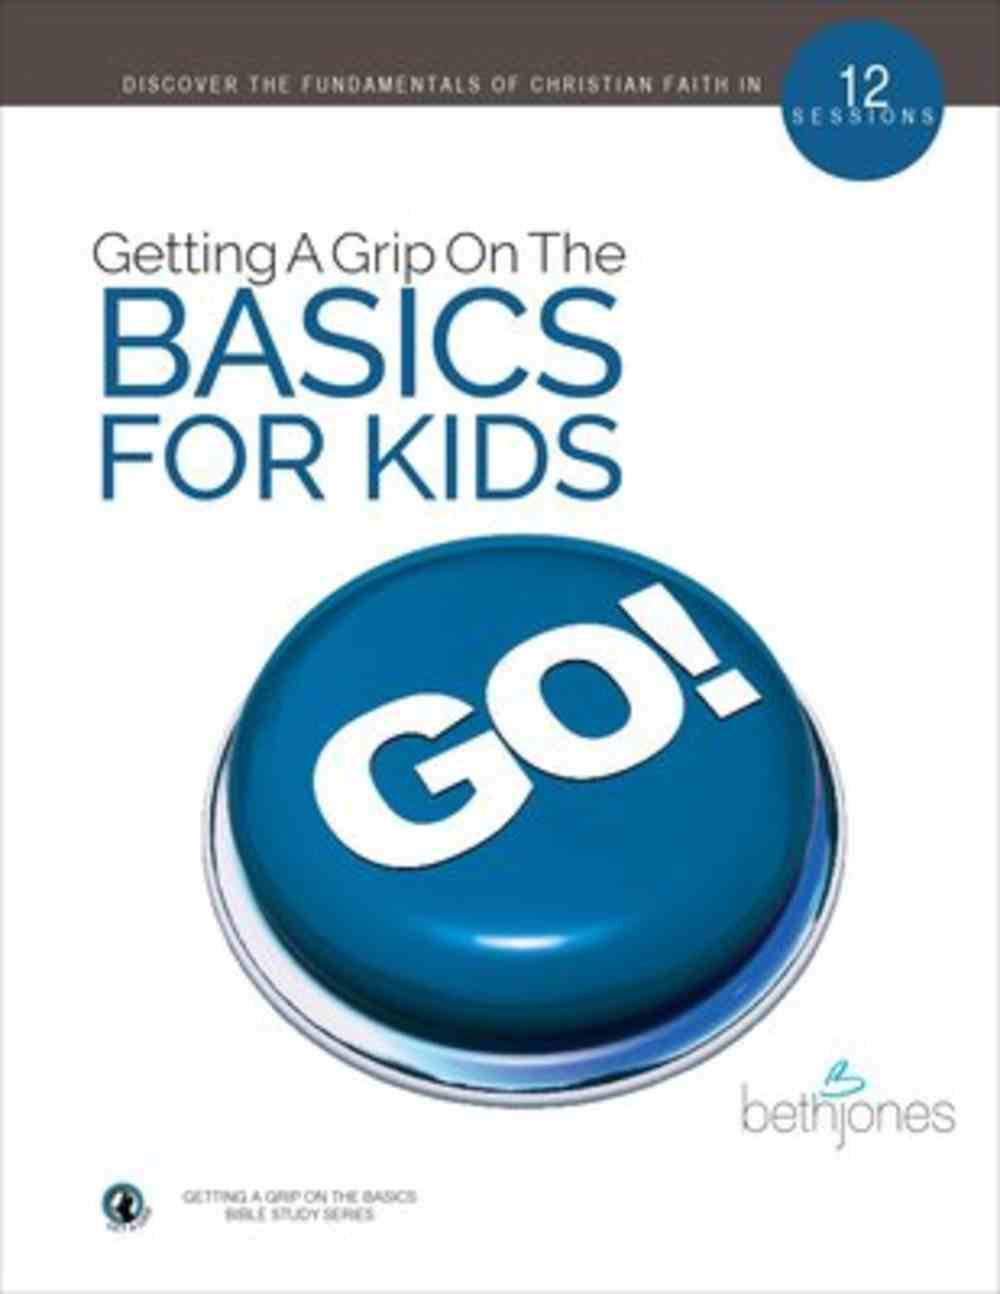 For Kids (12 Sessions) (Getting A Grip On The Bsaics Series) Paperback